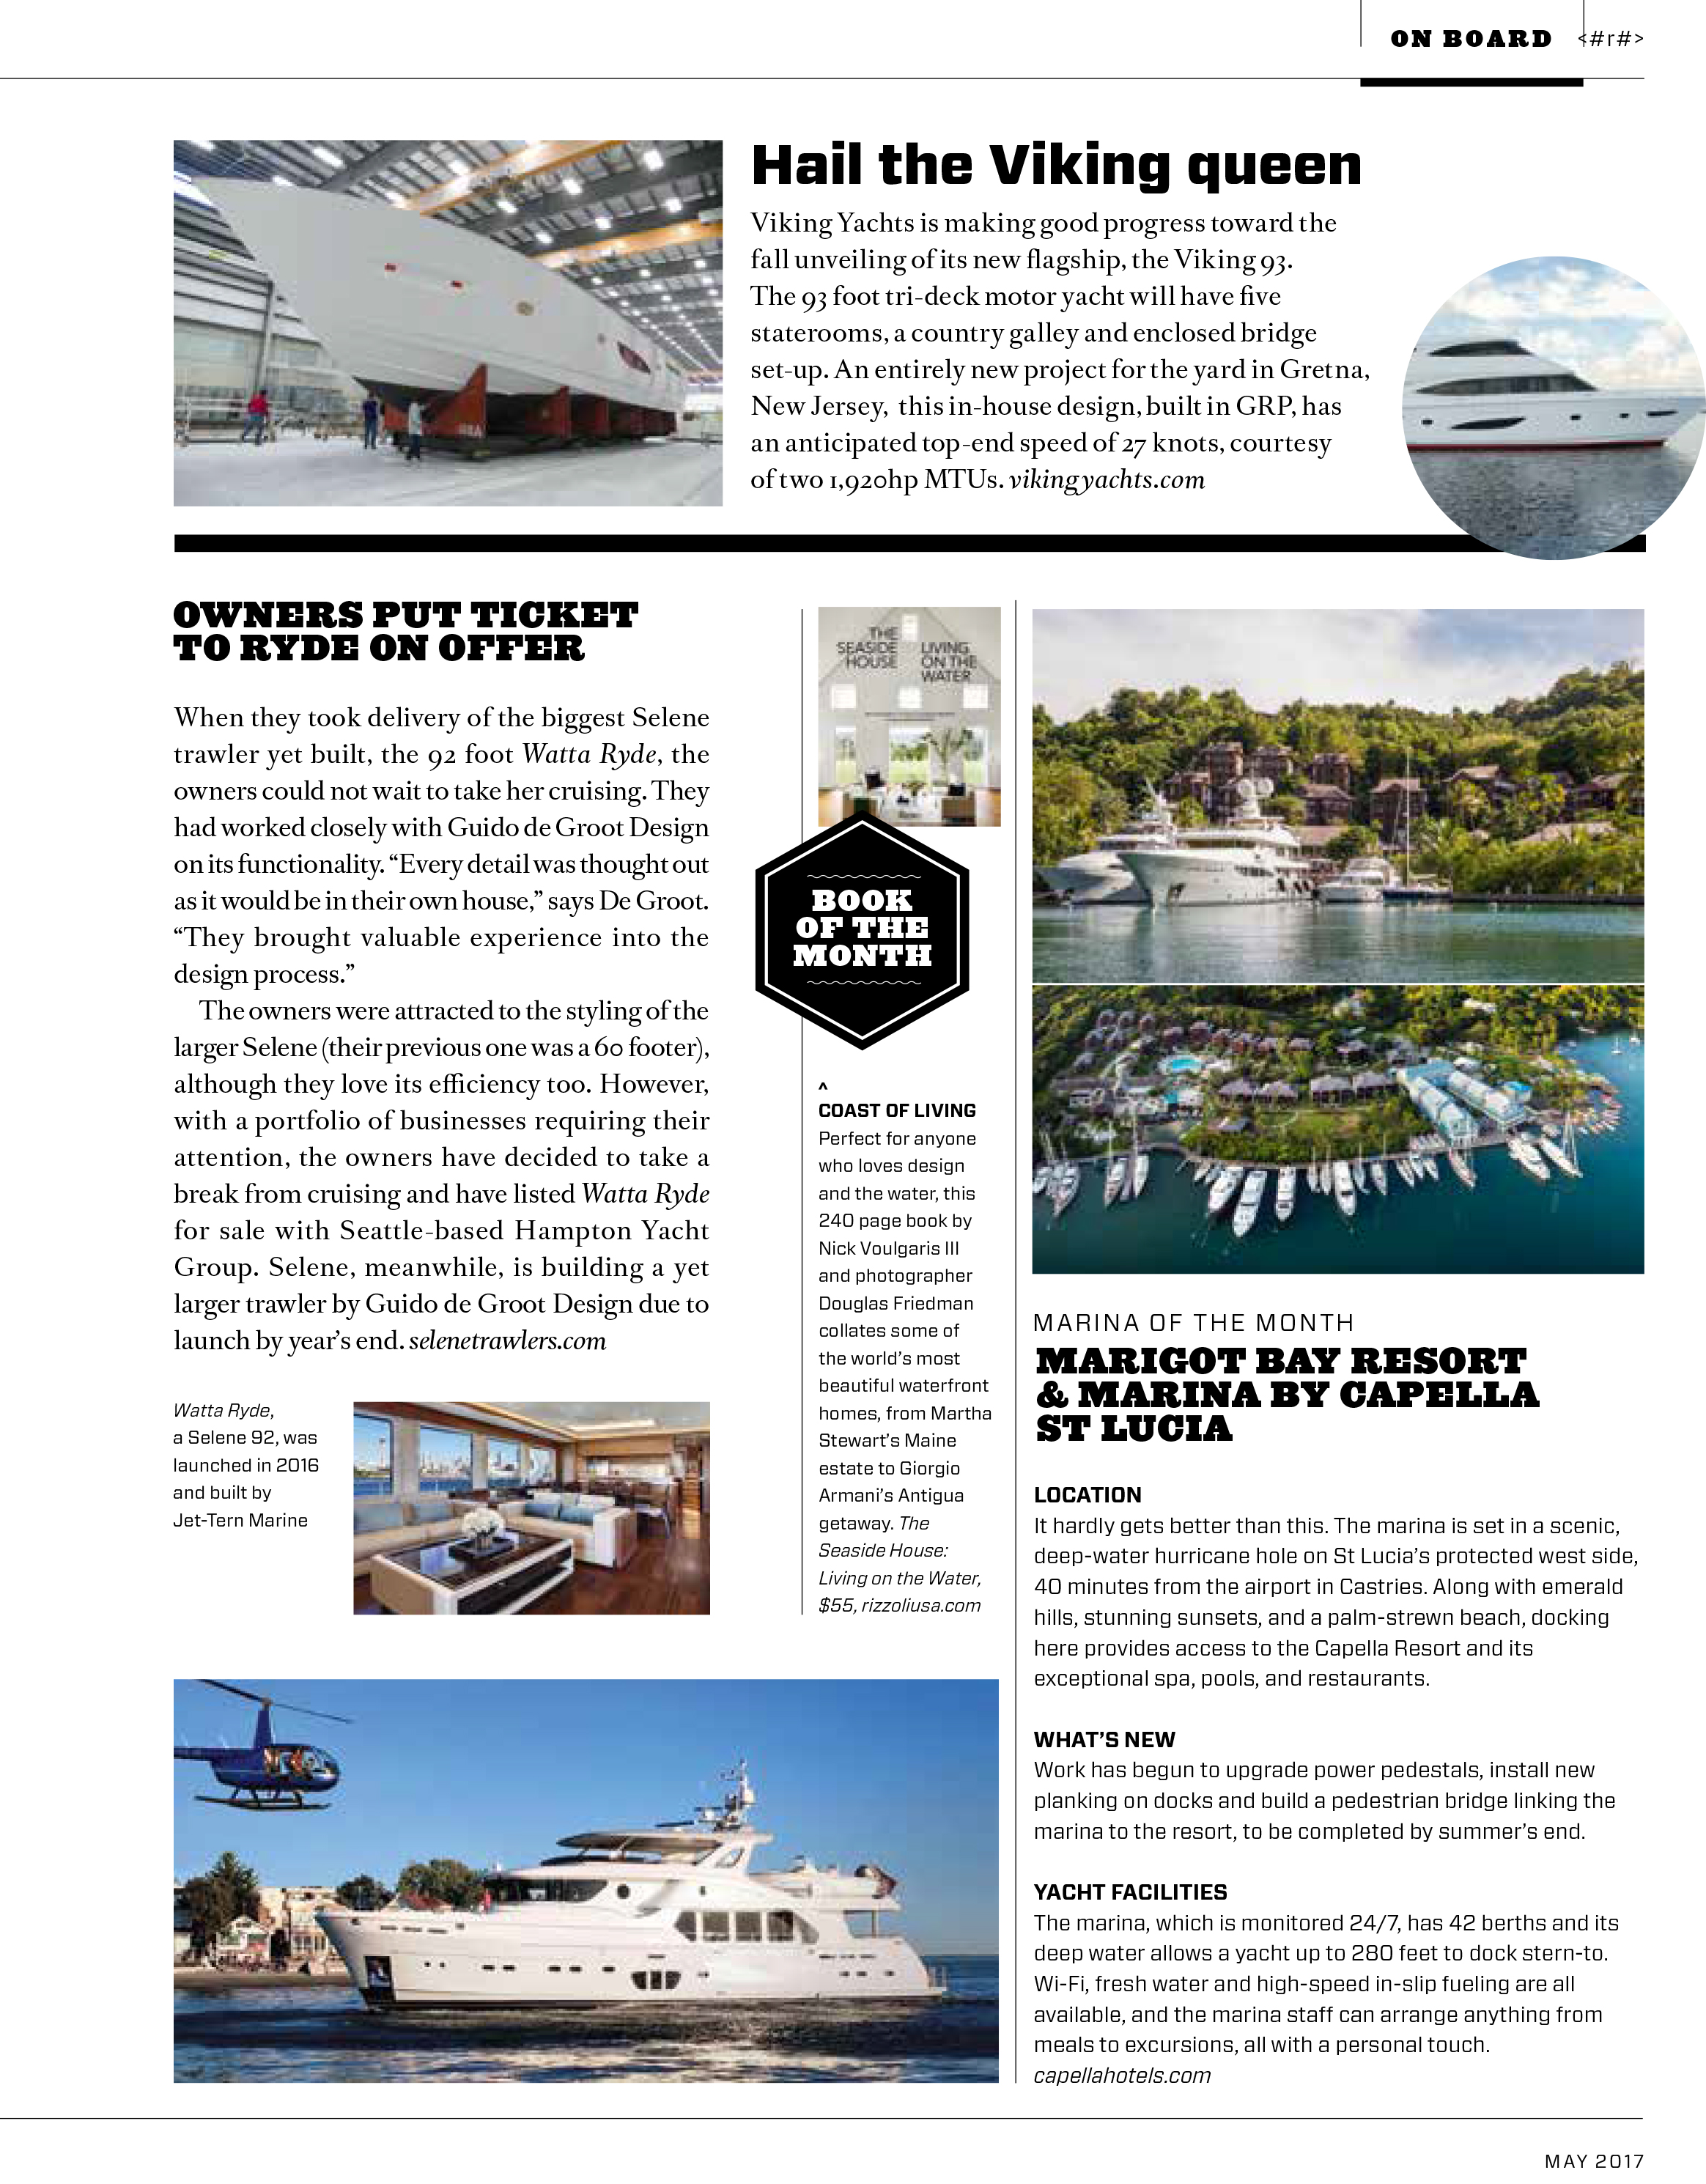 The 92' Selene's Feature in Boat International Magazine